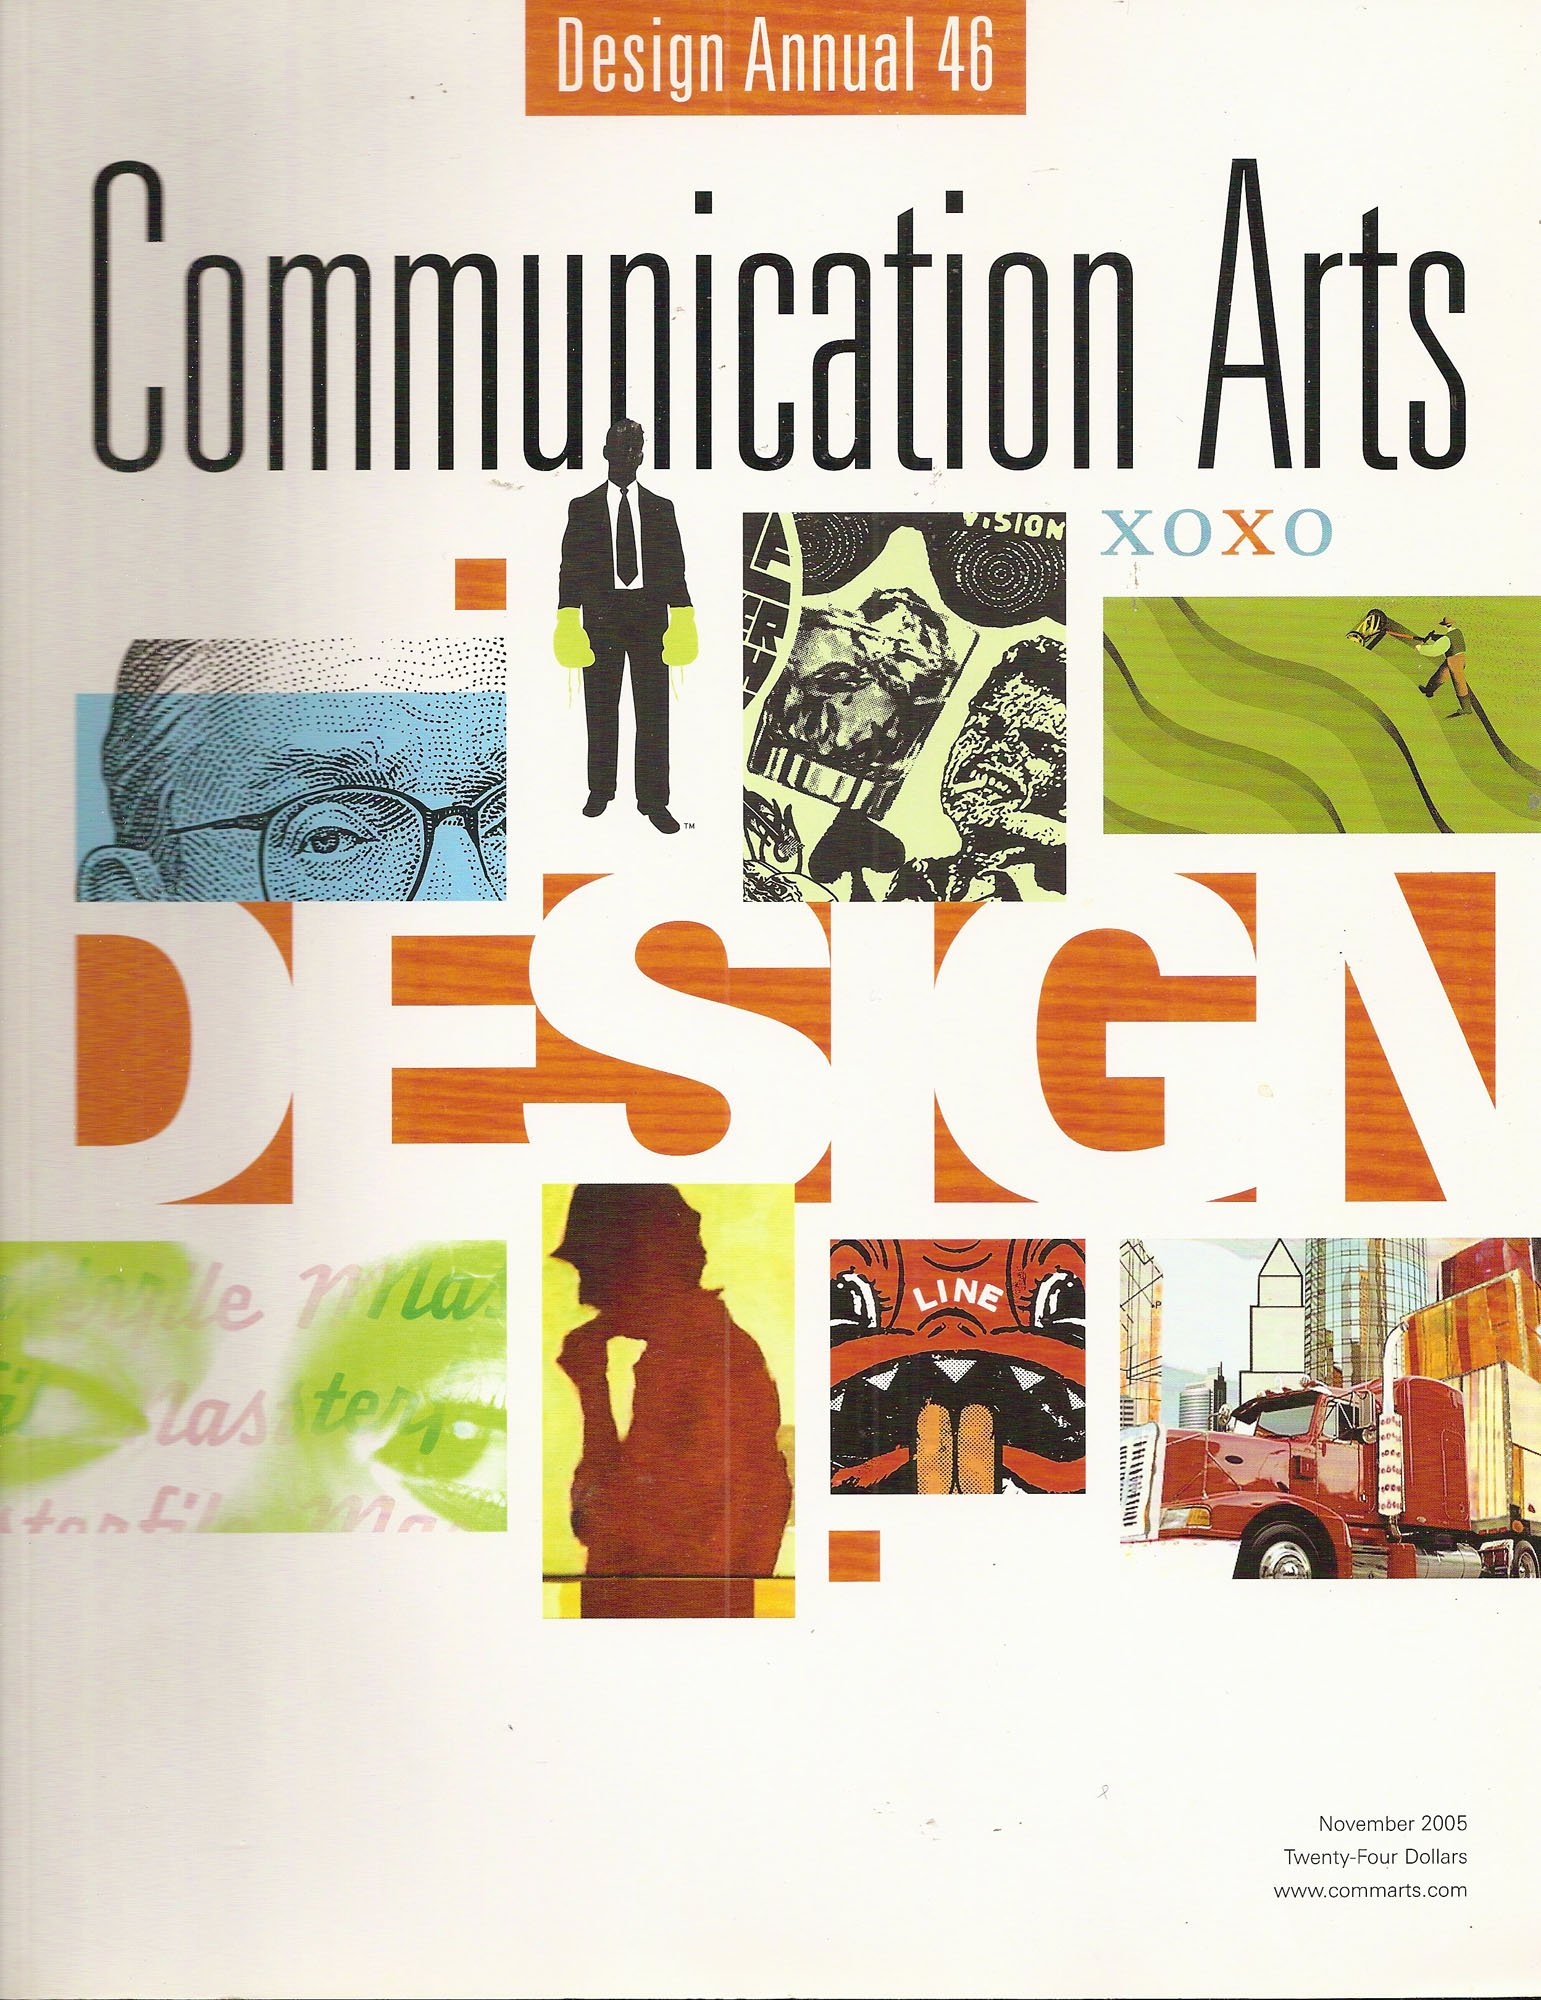 Communication Arts Magazine November 2005 - Design Annual 46 (47) pdf epub